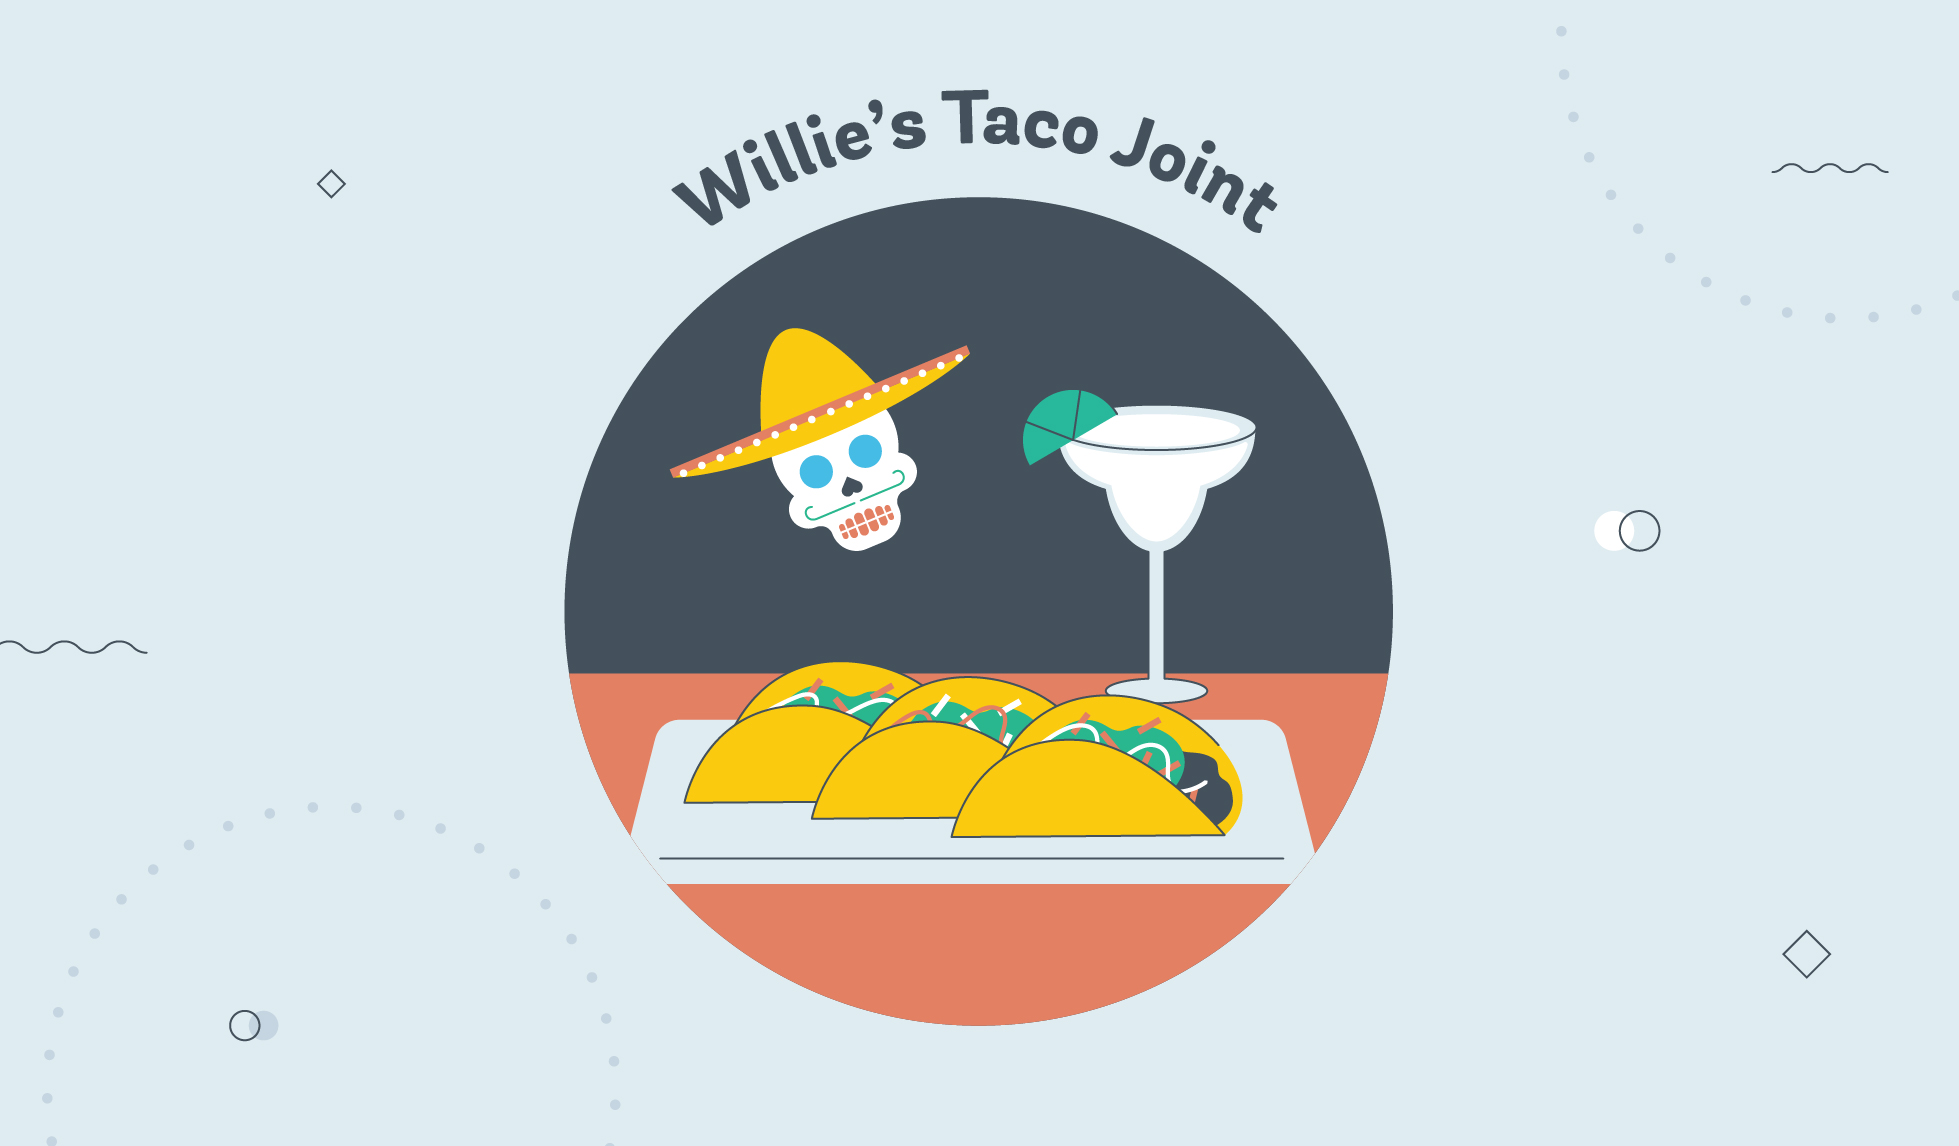 Willie's Taco Joint graphic